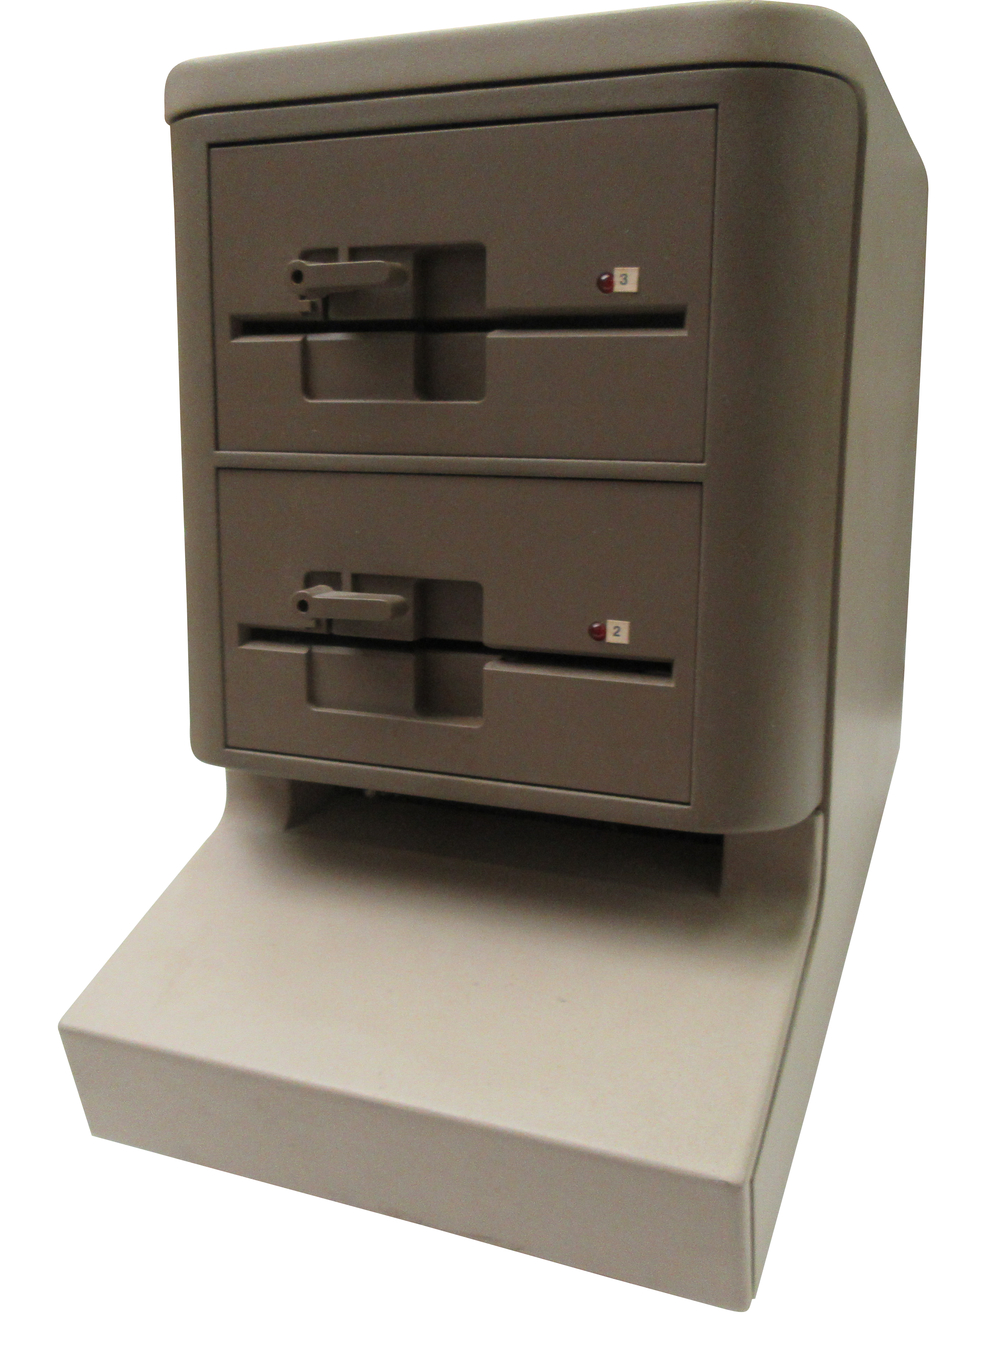 Scan of Document: STC Dual Disk Drive Unit